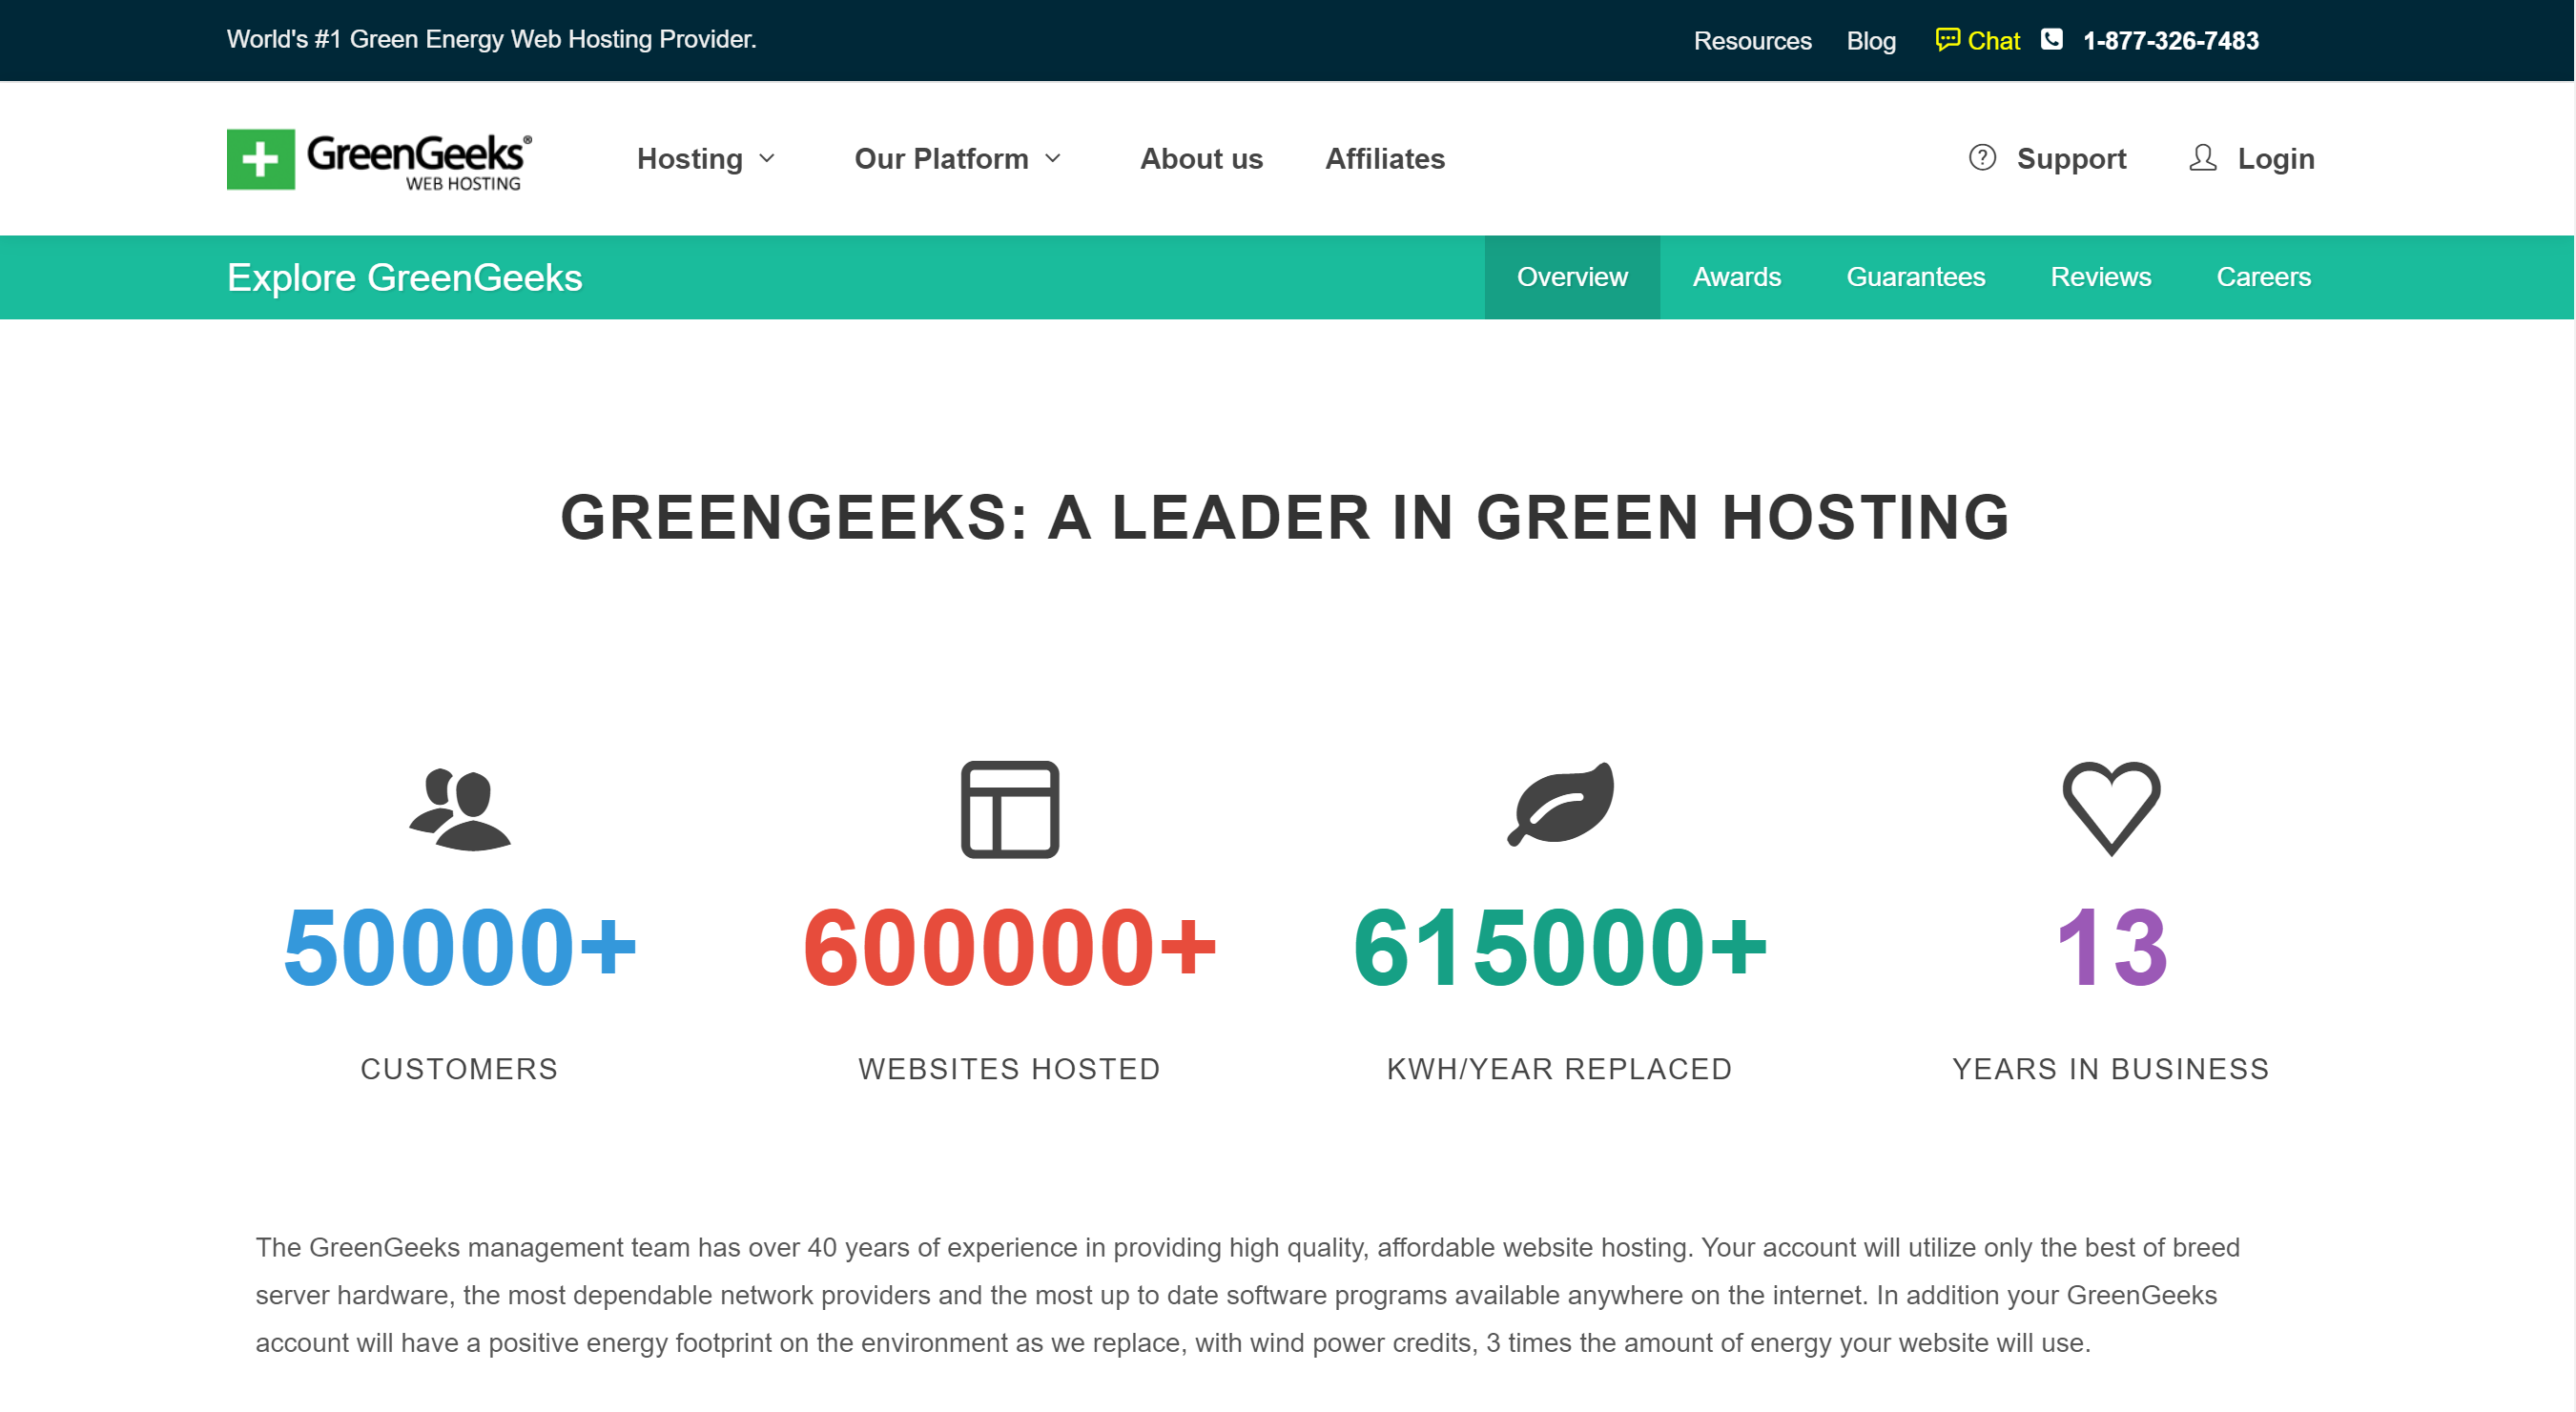 GreenGeeks About